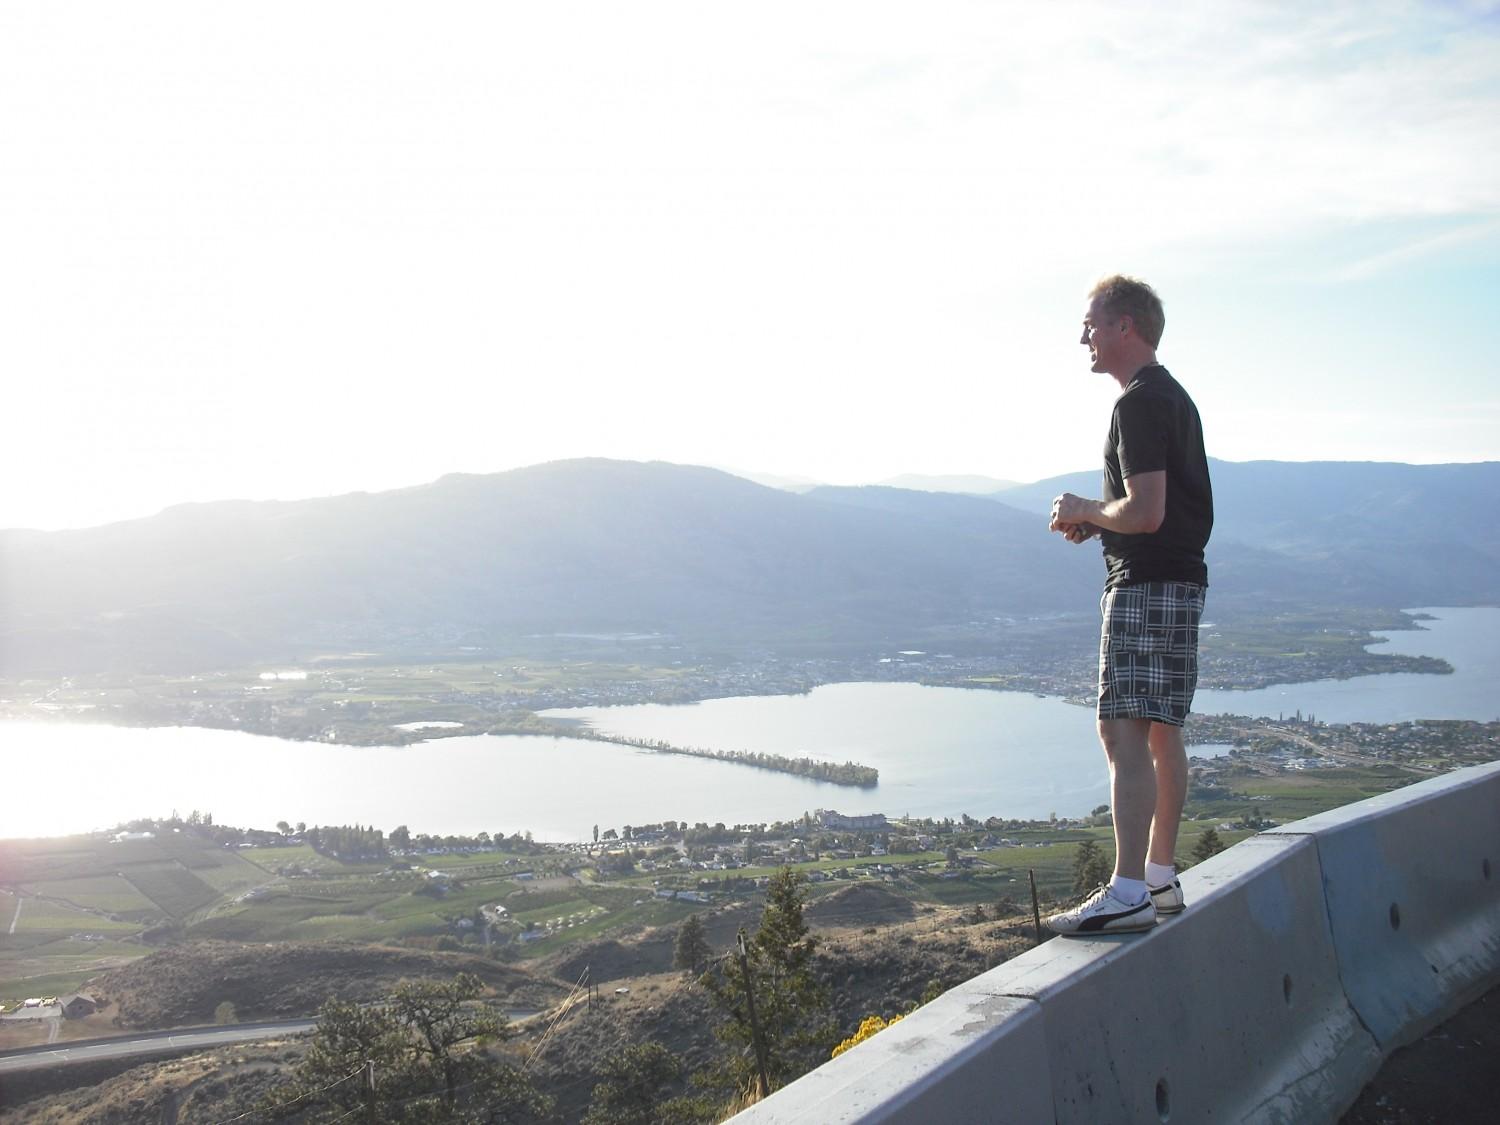 Brent looking over Osoyoos from outside of town